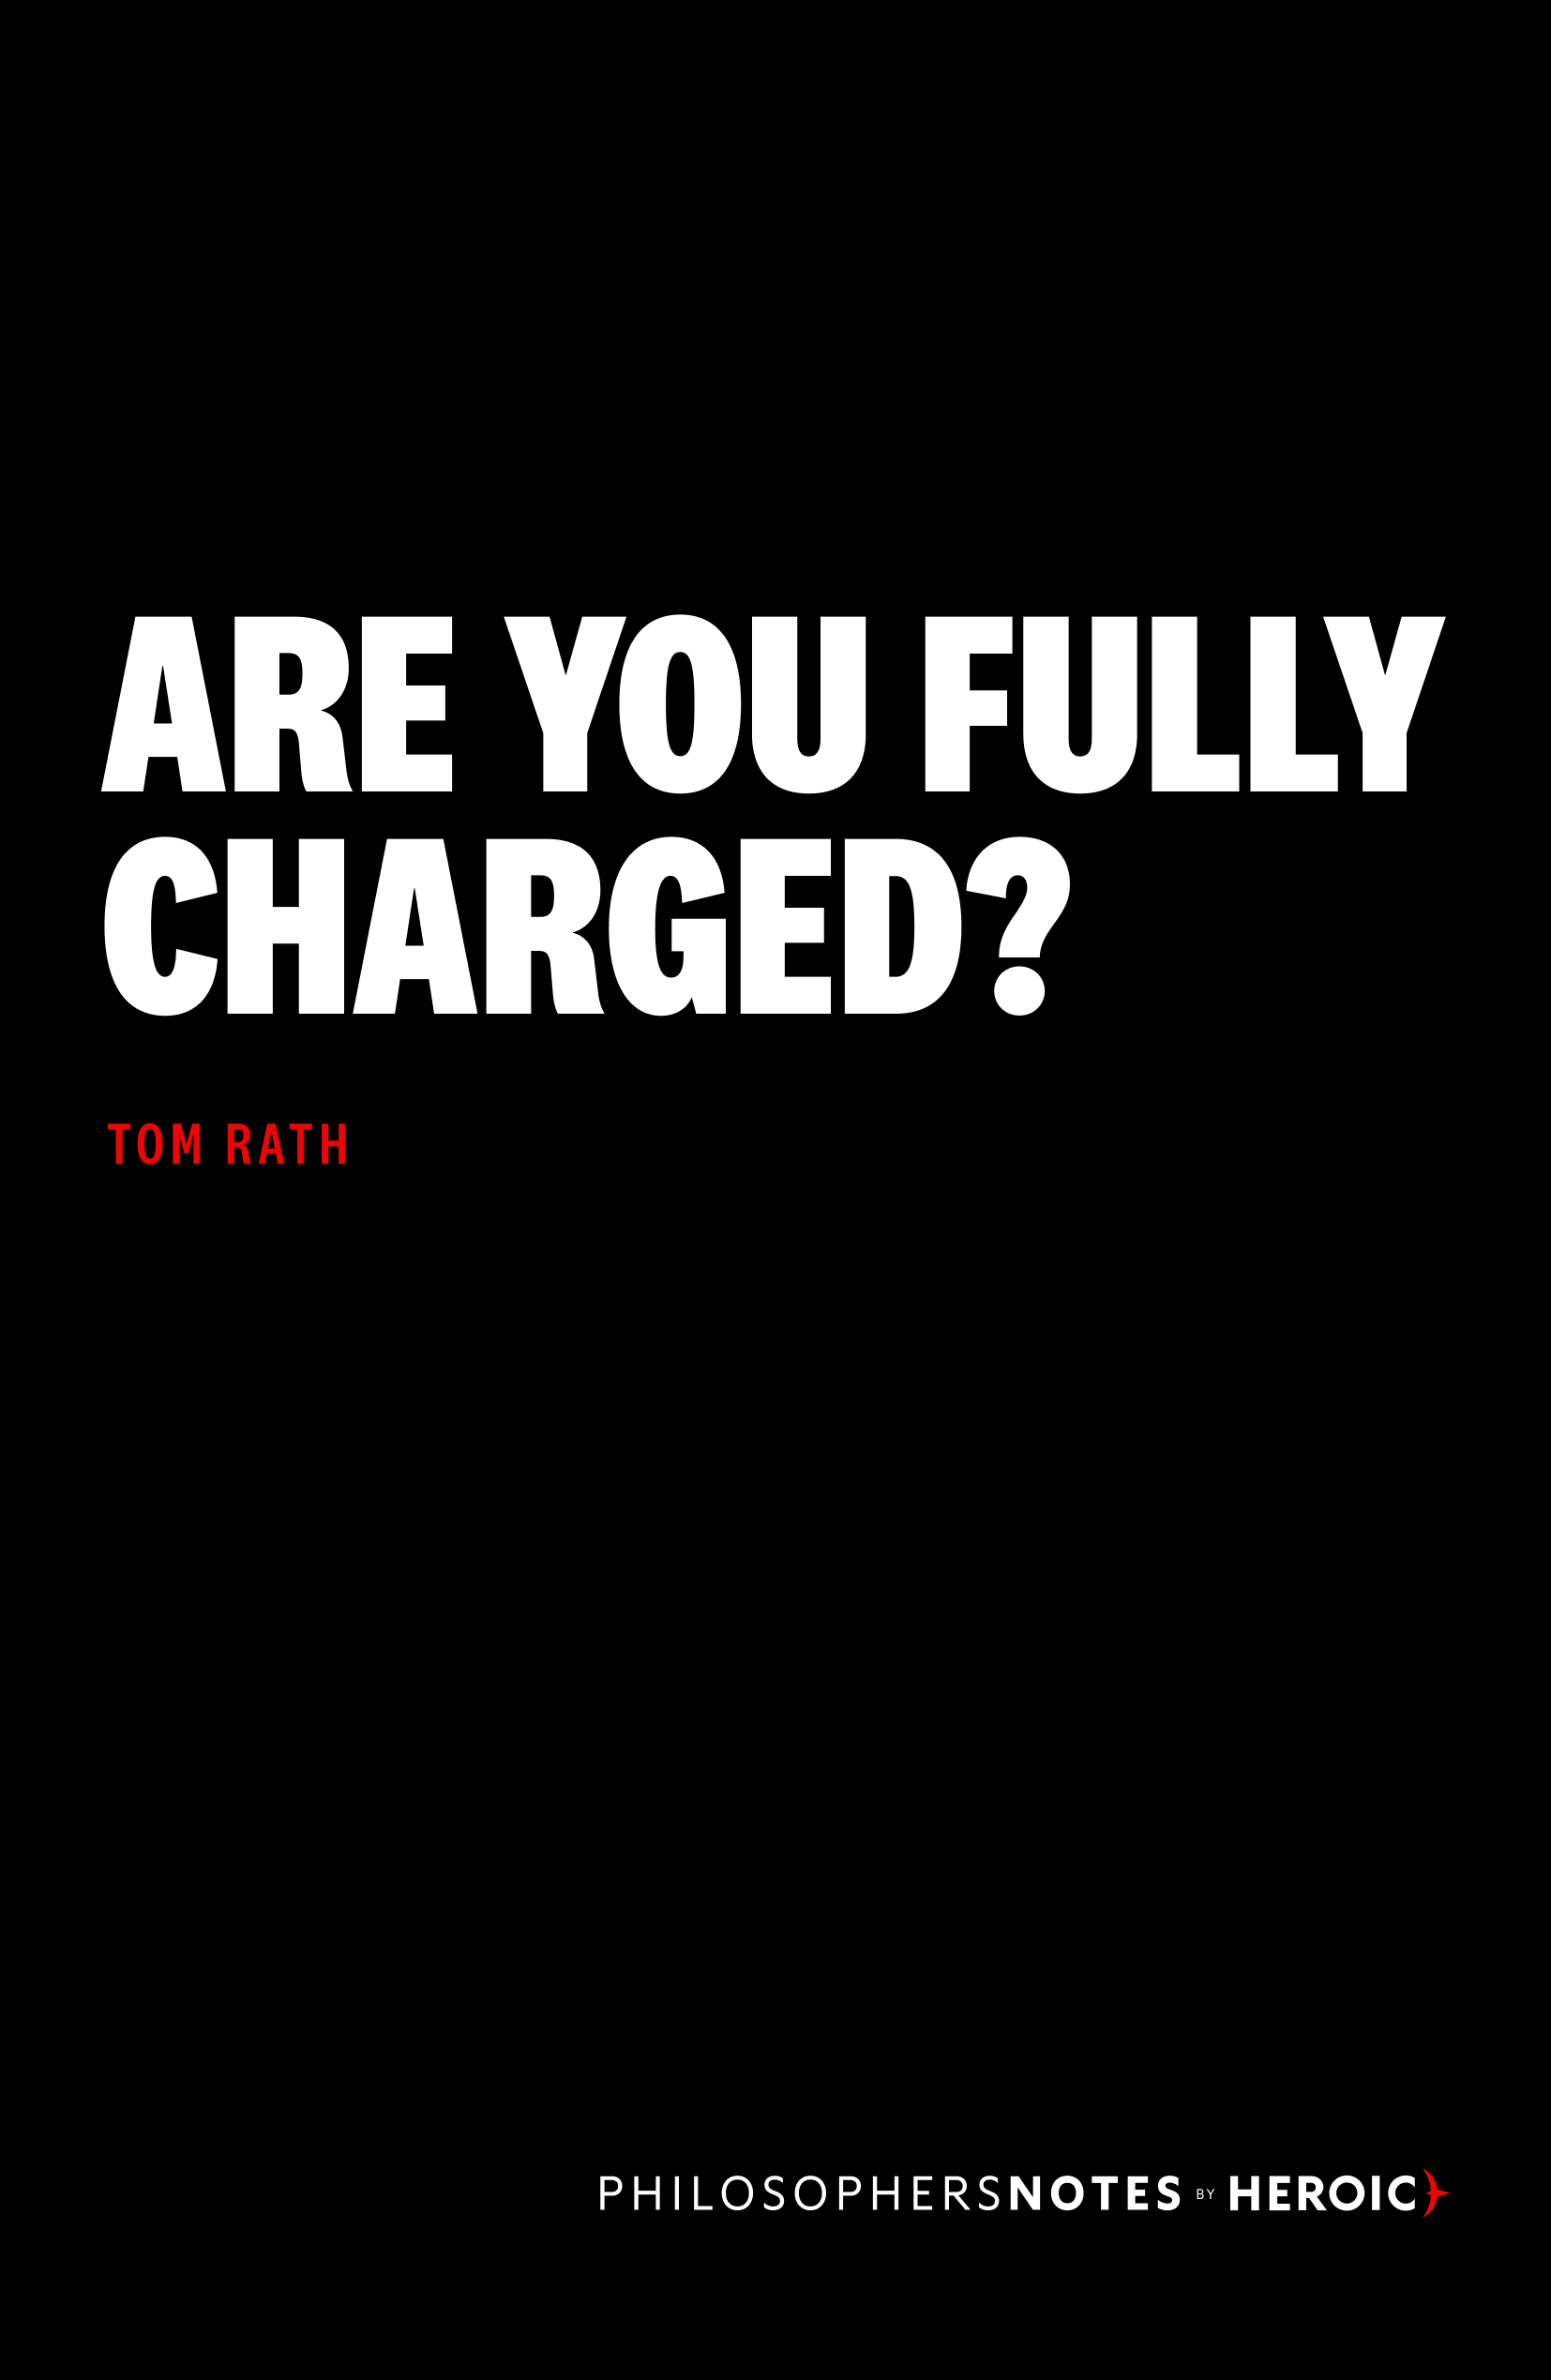 Are You Fully Charged?